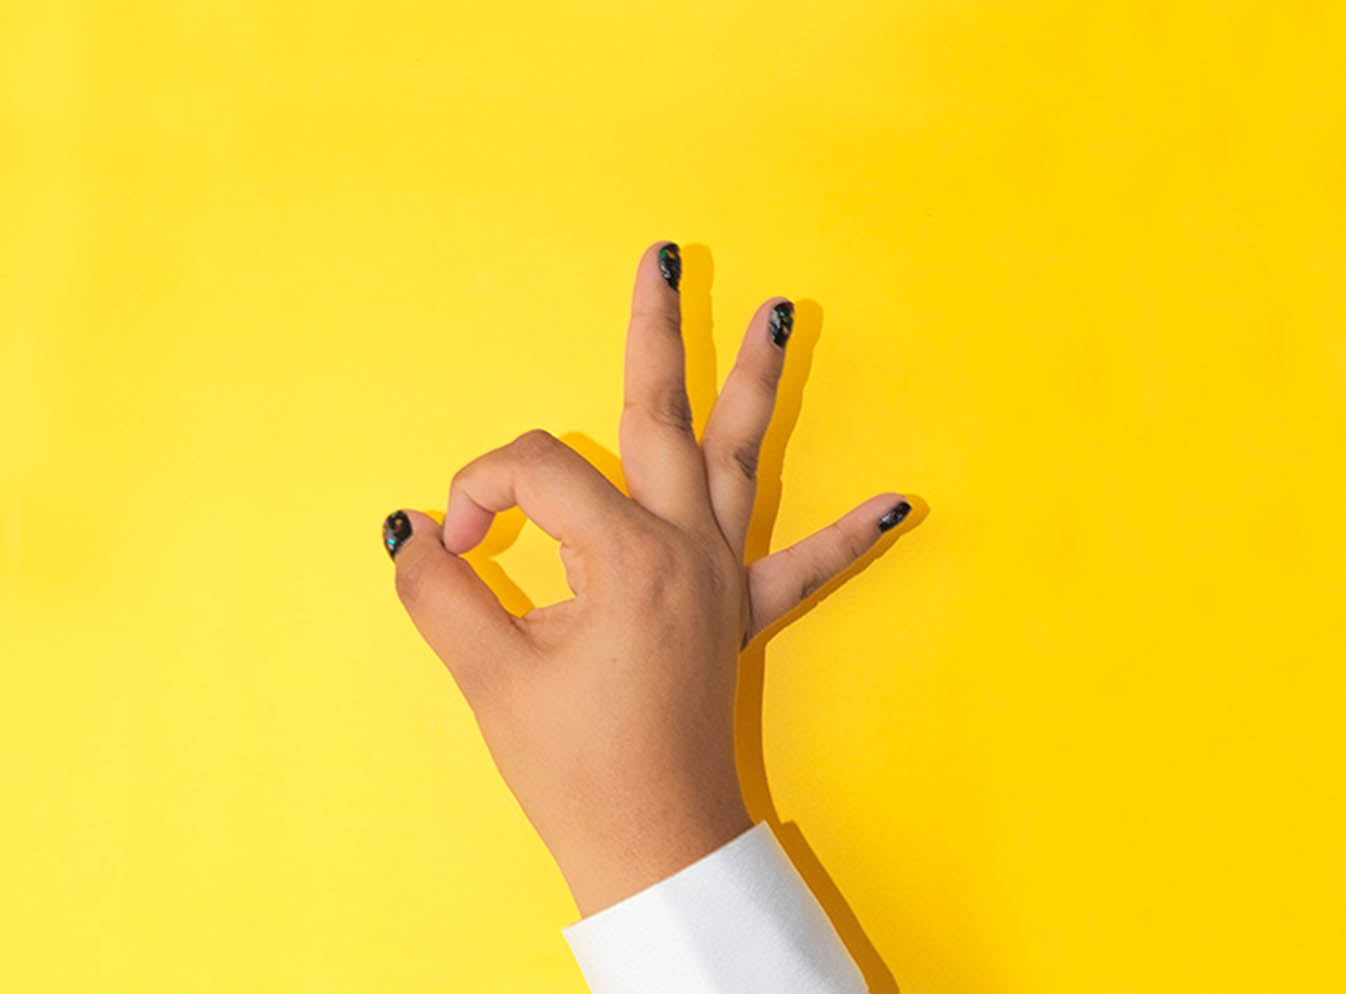 Hand making OK sign on yellow background